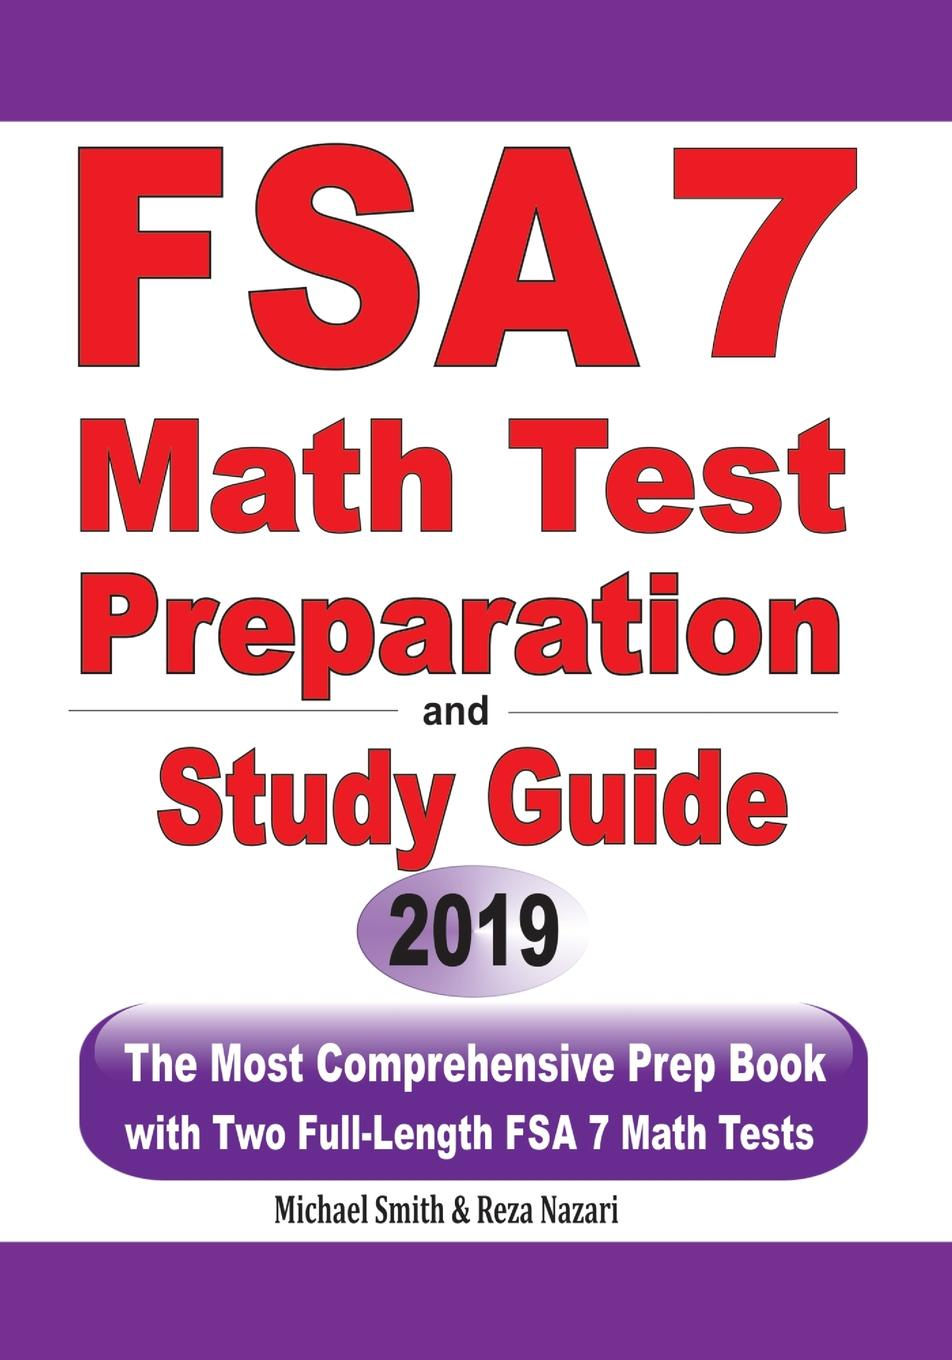 Michael Smith, Reza Nazari FSA 7 Math Test Preparation and Study Guide. The Most Comprehensive Prep Book with Two Full-Length FSA Math Tests